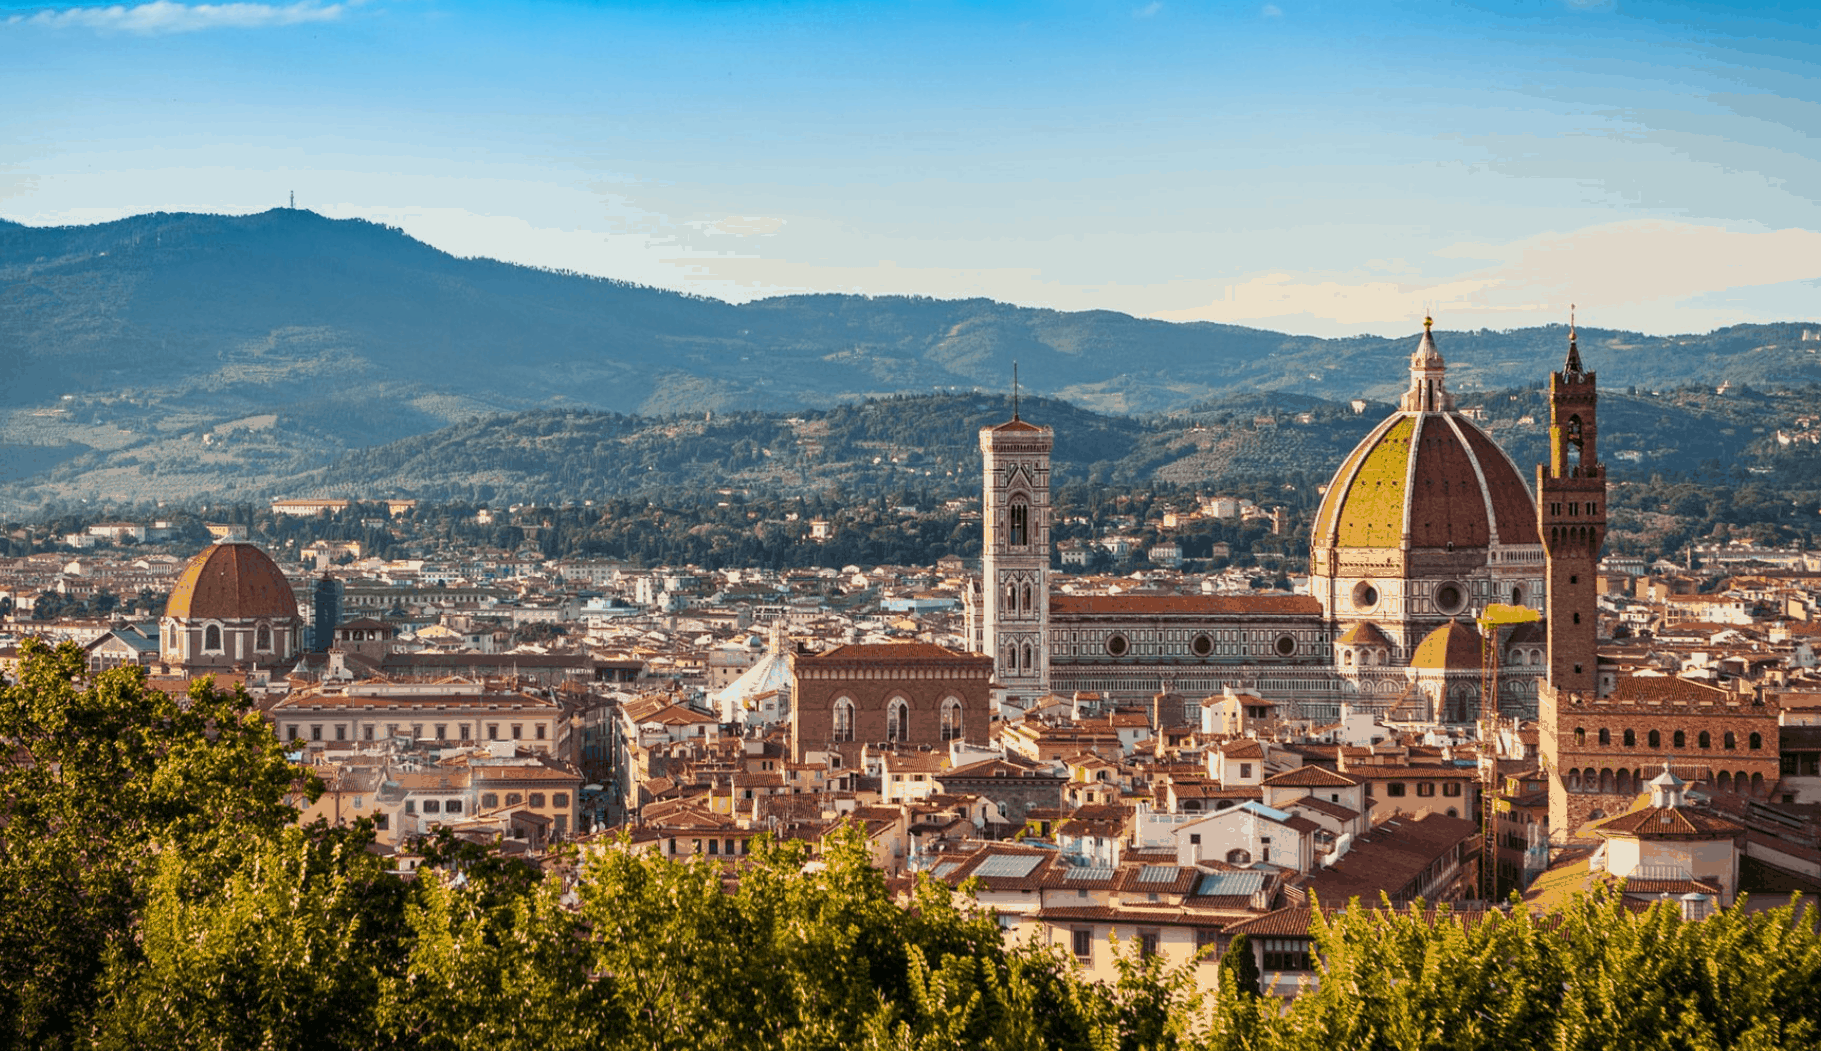 Duomo - A place that remains the same